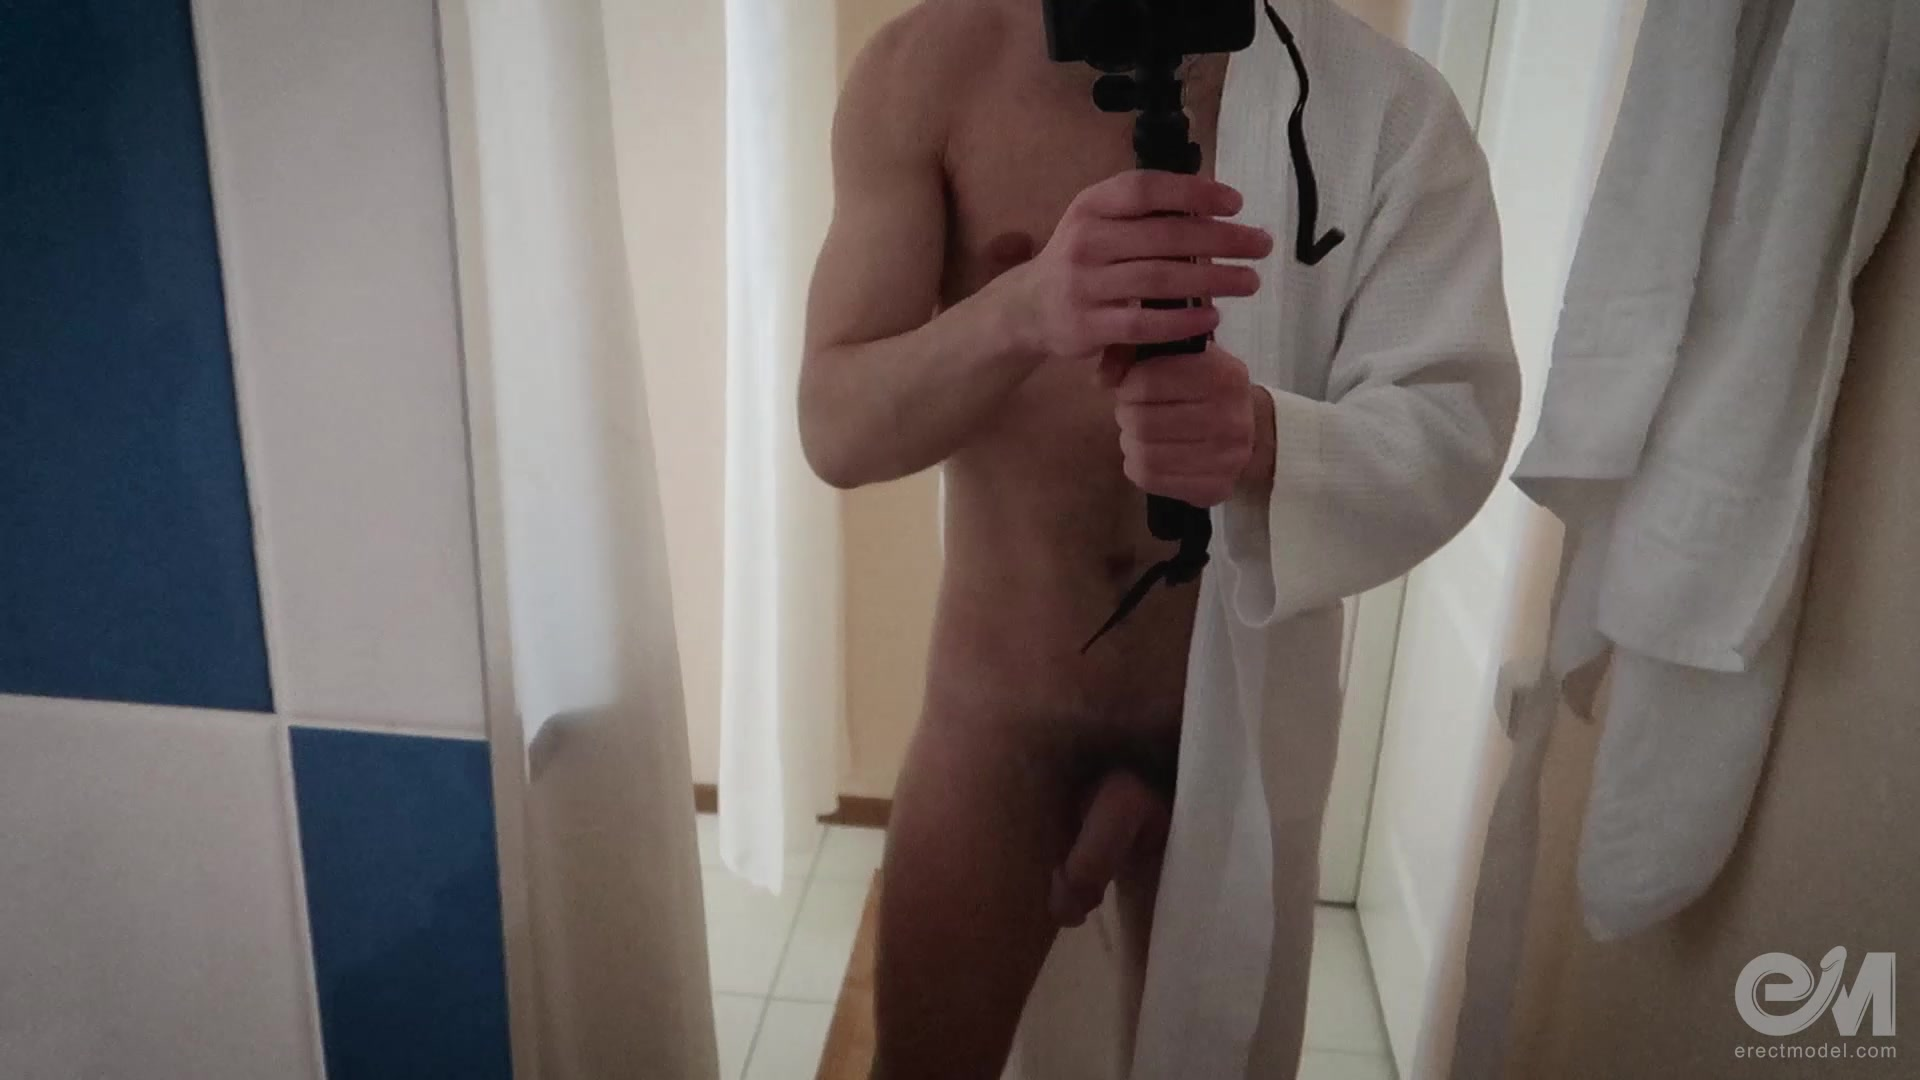 Guy naked selfie video with wet hard cock